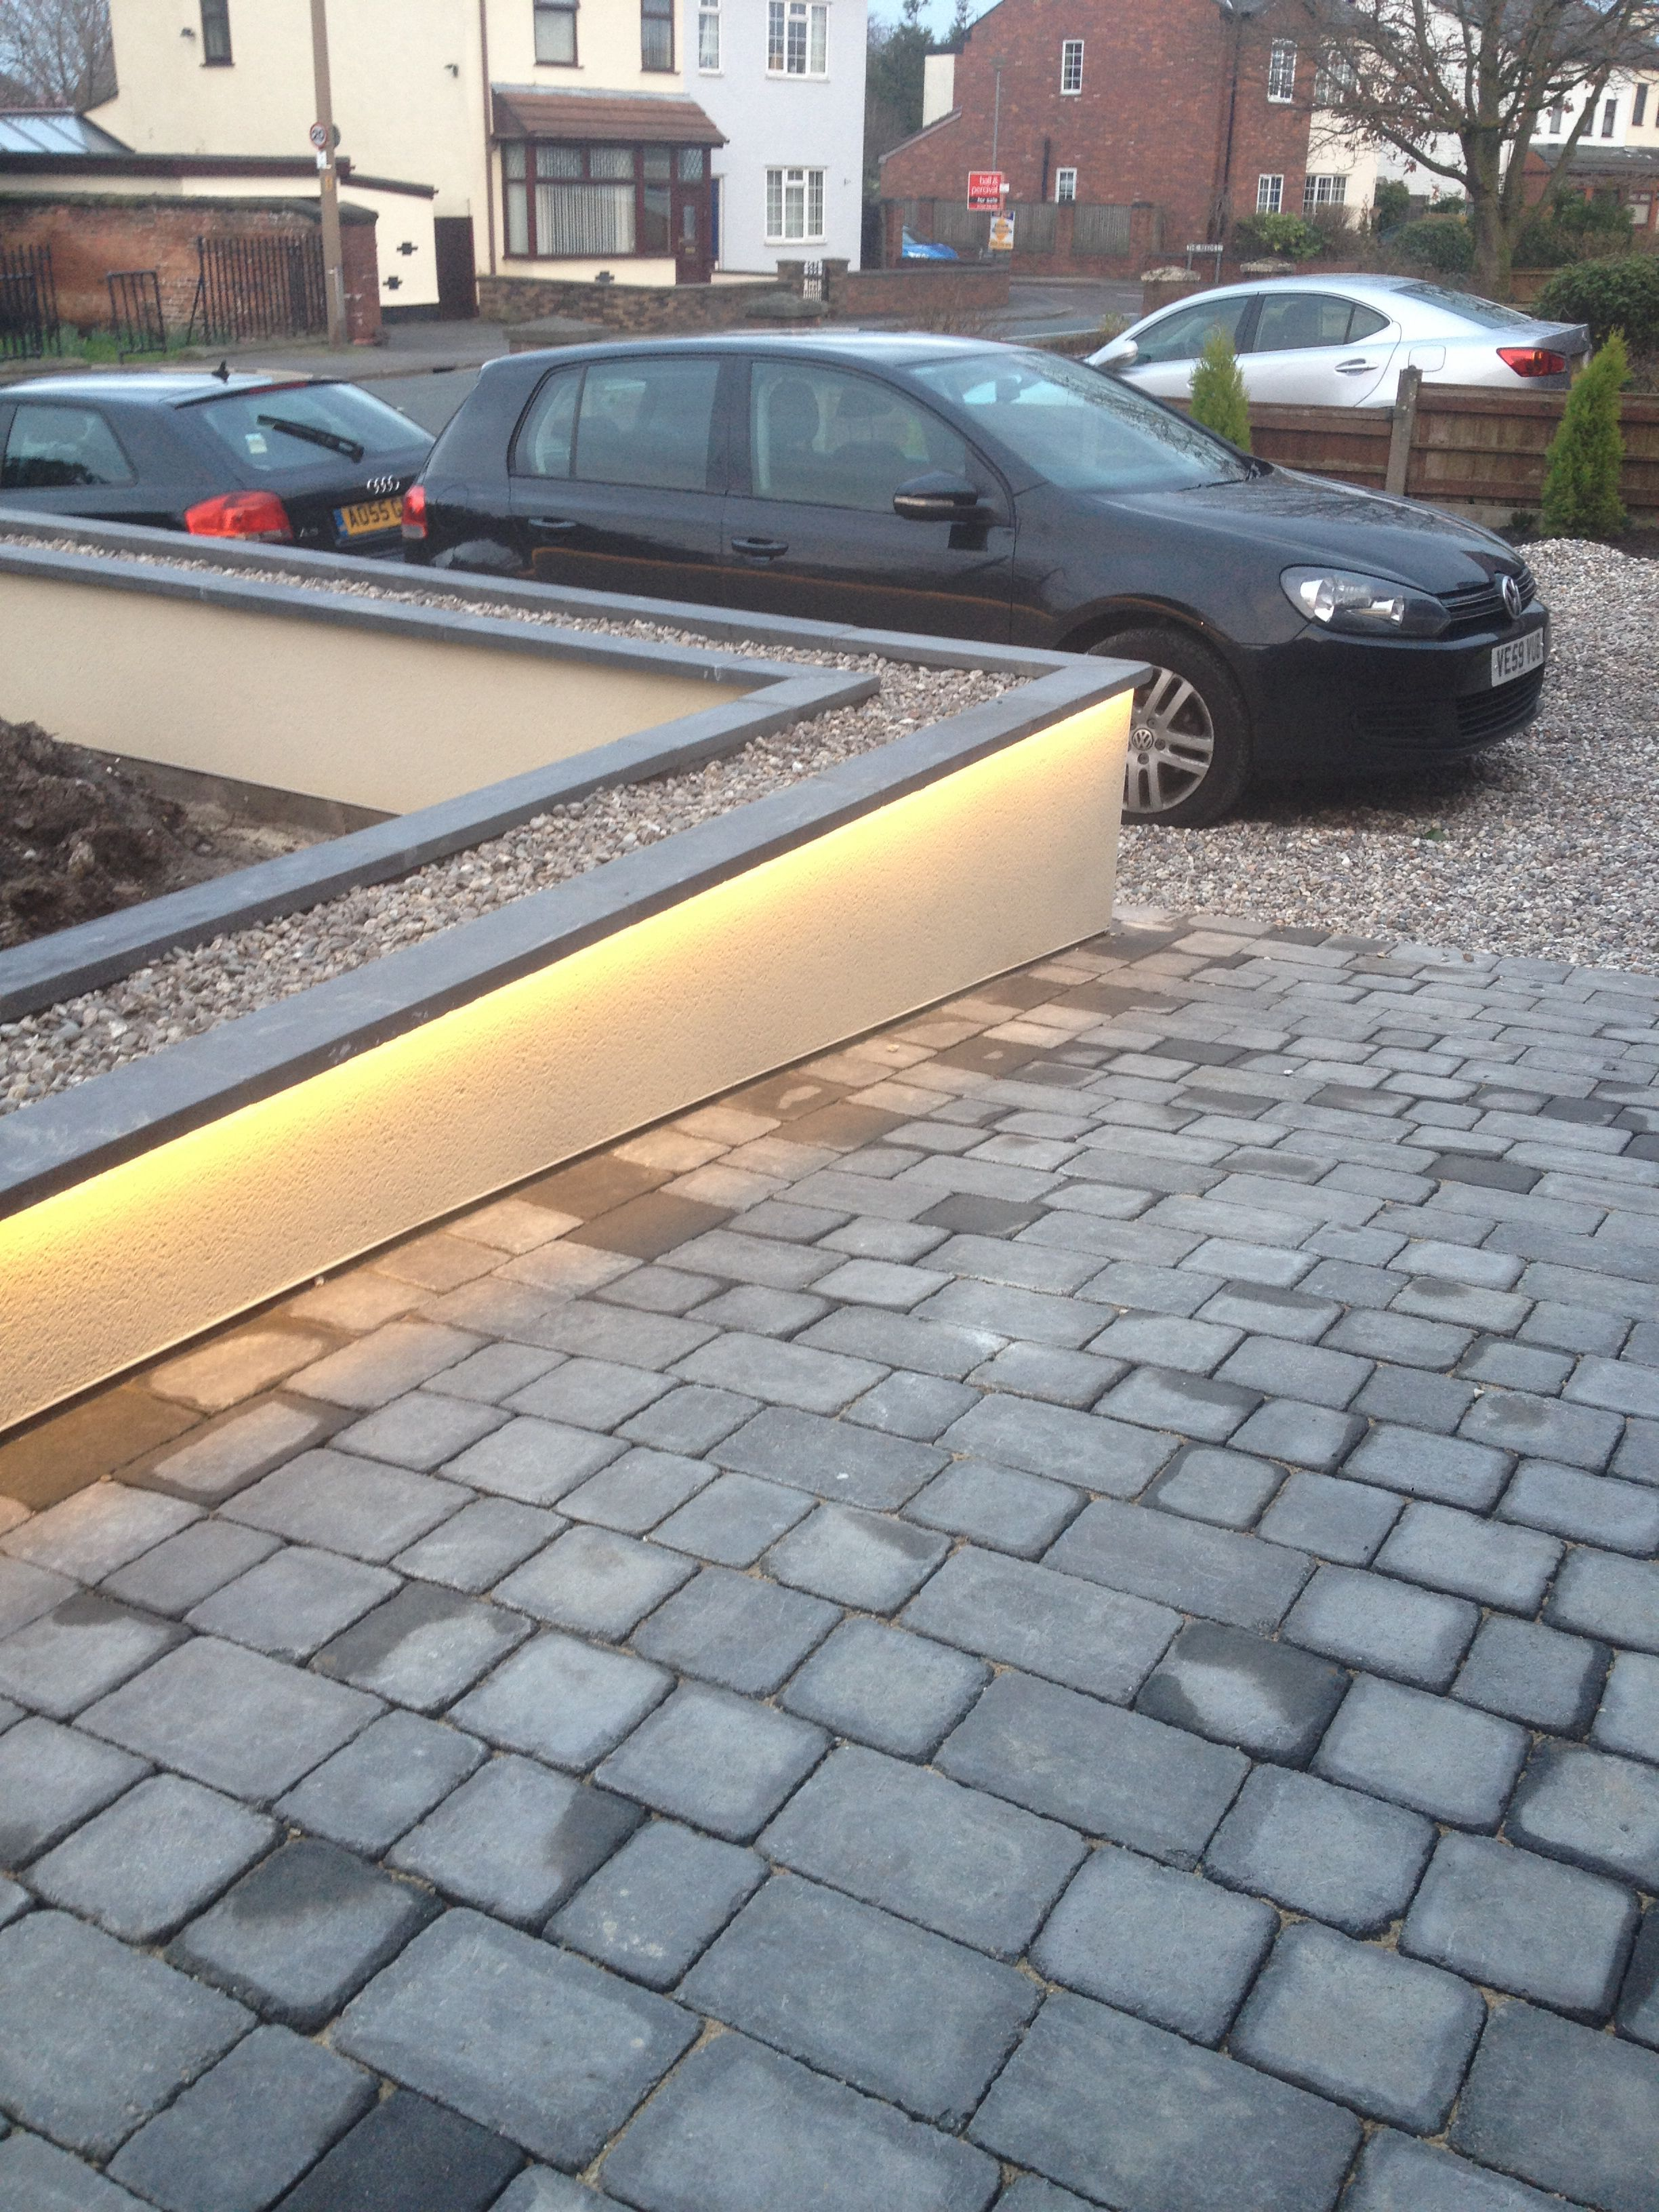 Hidden Led Strip Lights In The Coping Stones Lights The Path Really Well Led Outdoor Lighting Garden Wall Lights Led Strip Lighting